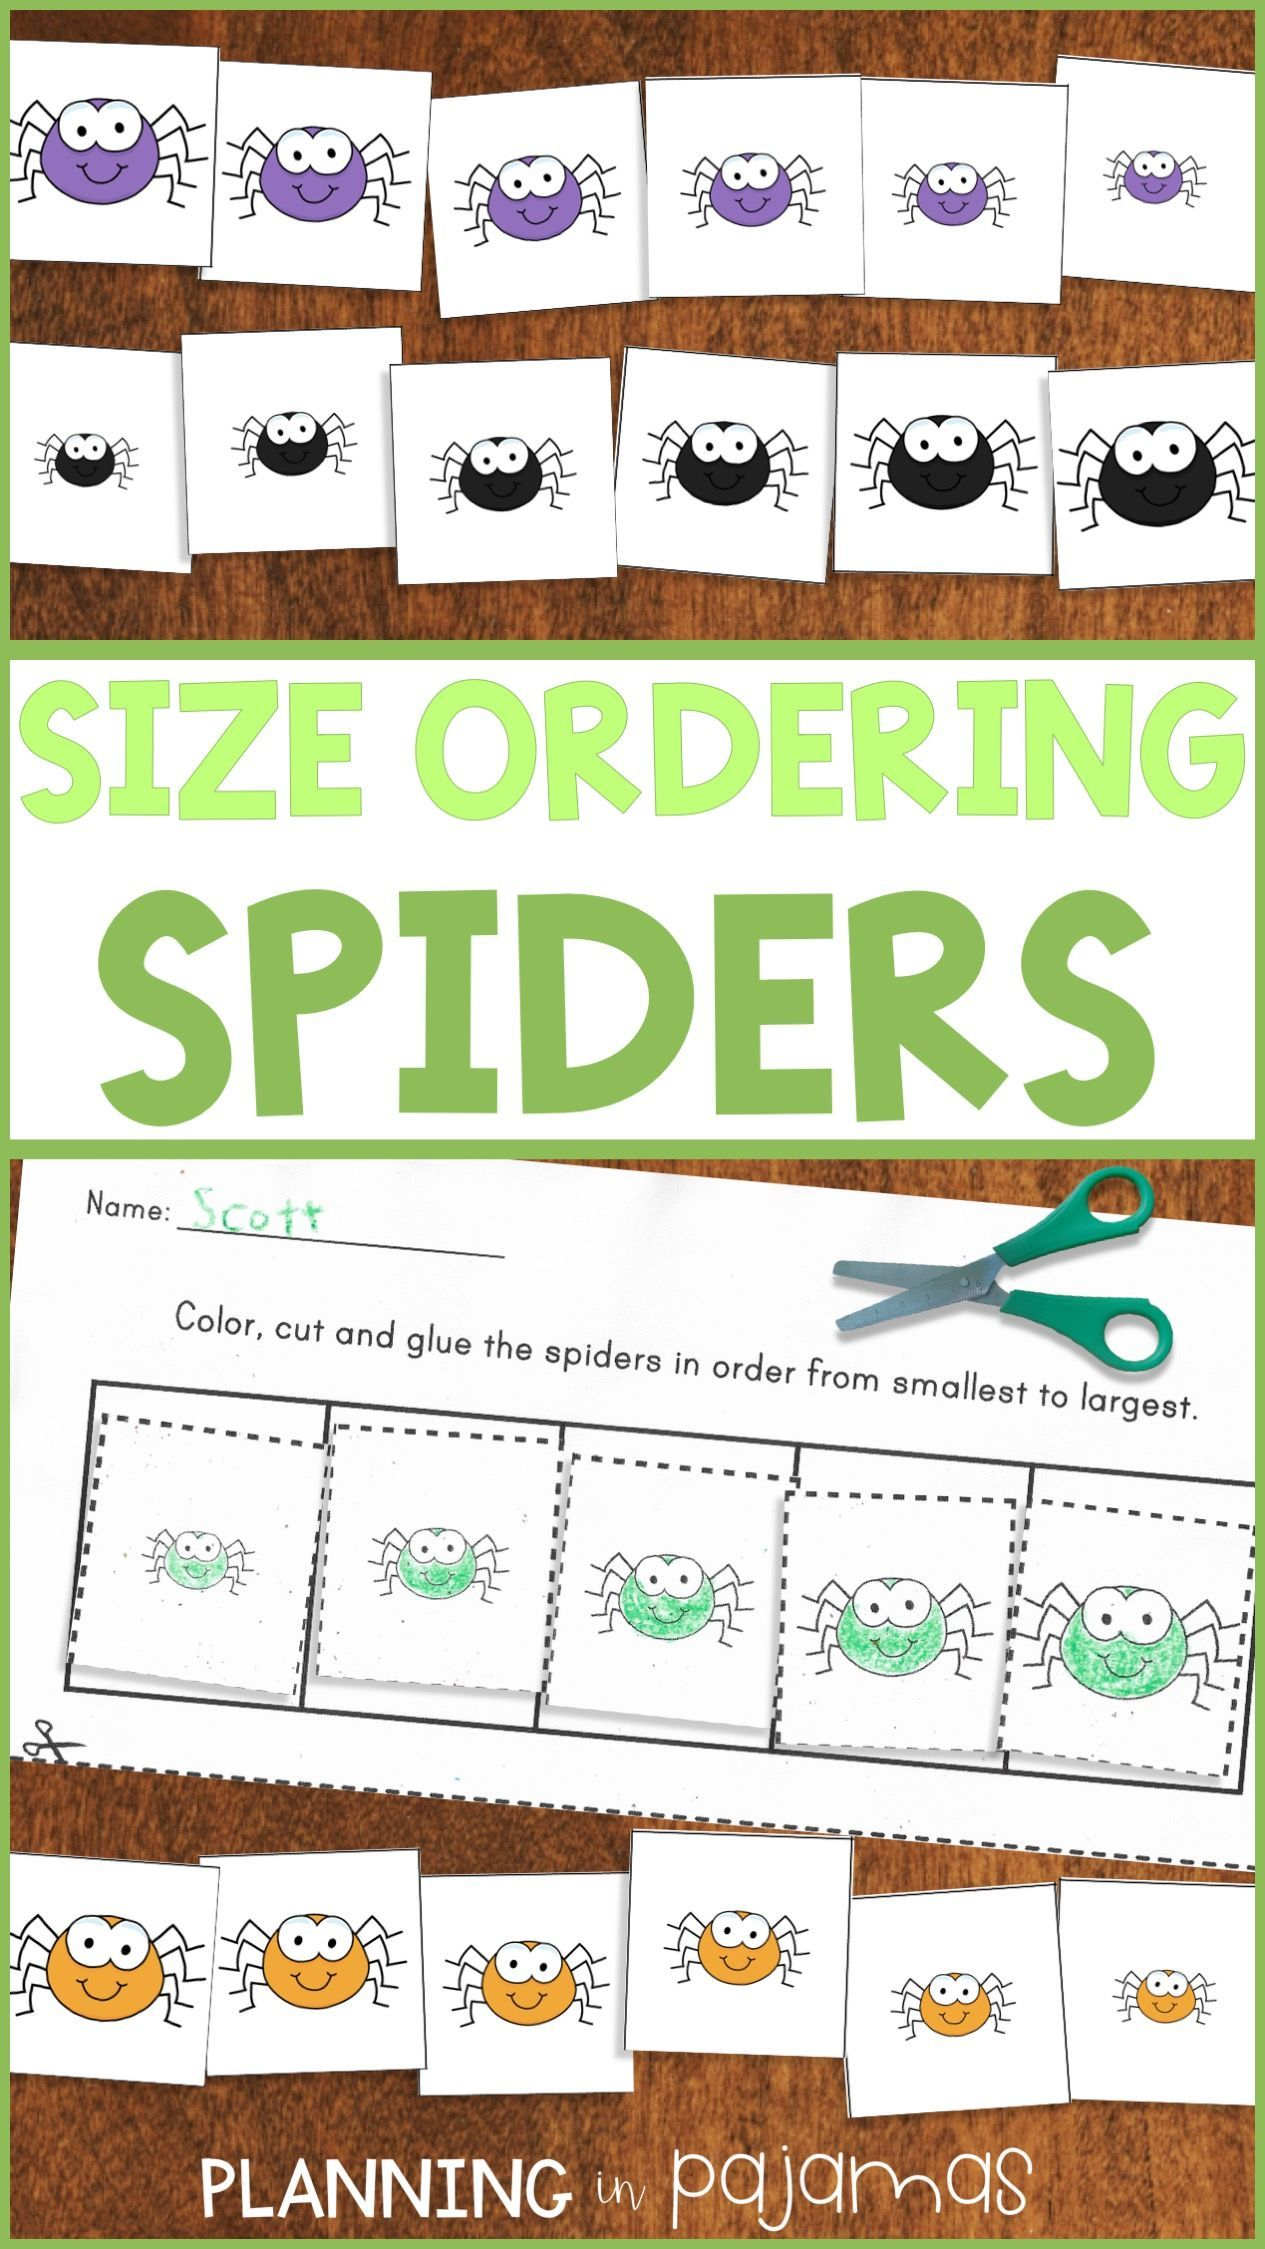 Spiders Size Ordering From Smallest To Largest